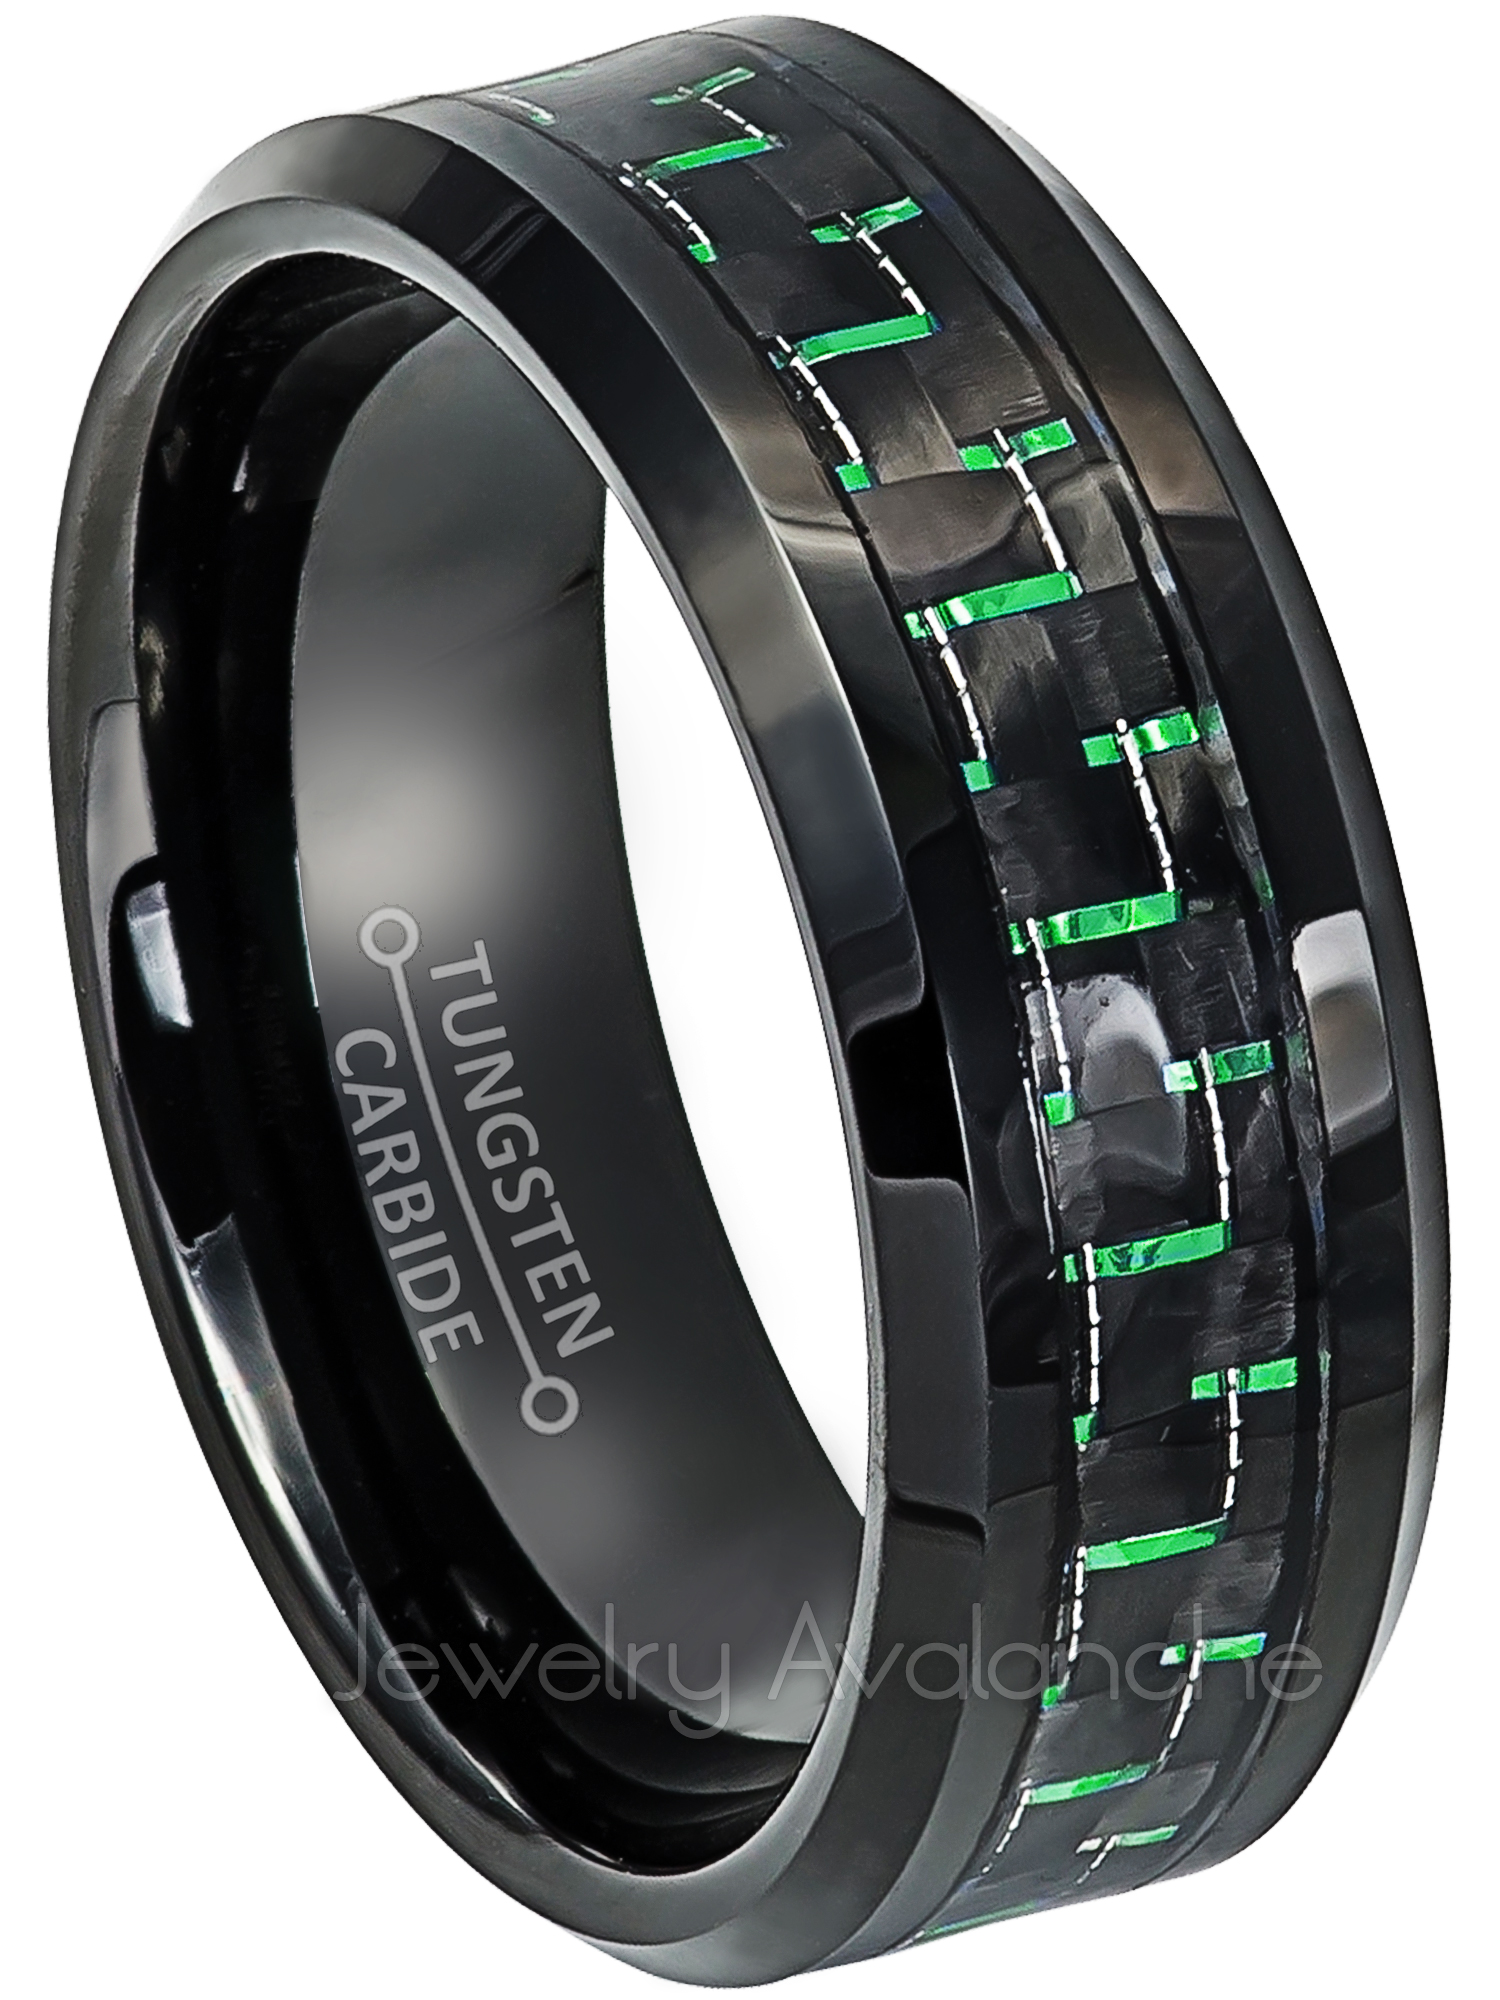 Jewelry Avalanche 8mm Beveled Cobalt Wedding Band with Carbon Fiber Inlay Hypoallergenic Comfort Fit Anniversary Ring